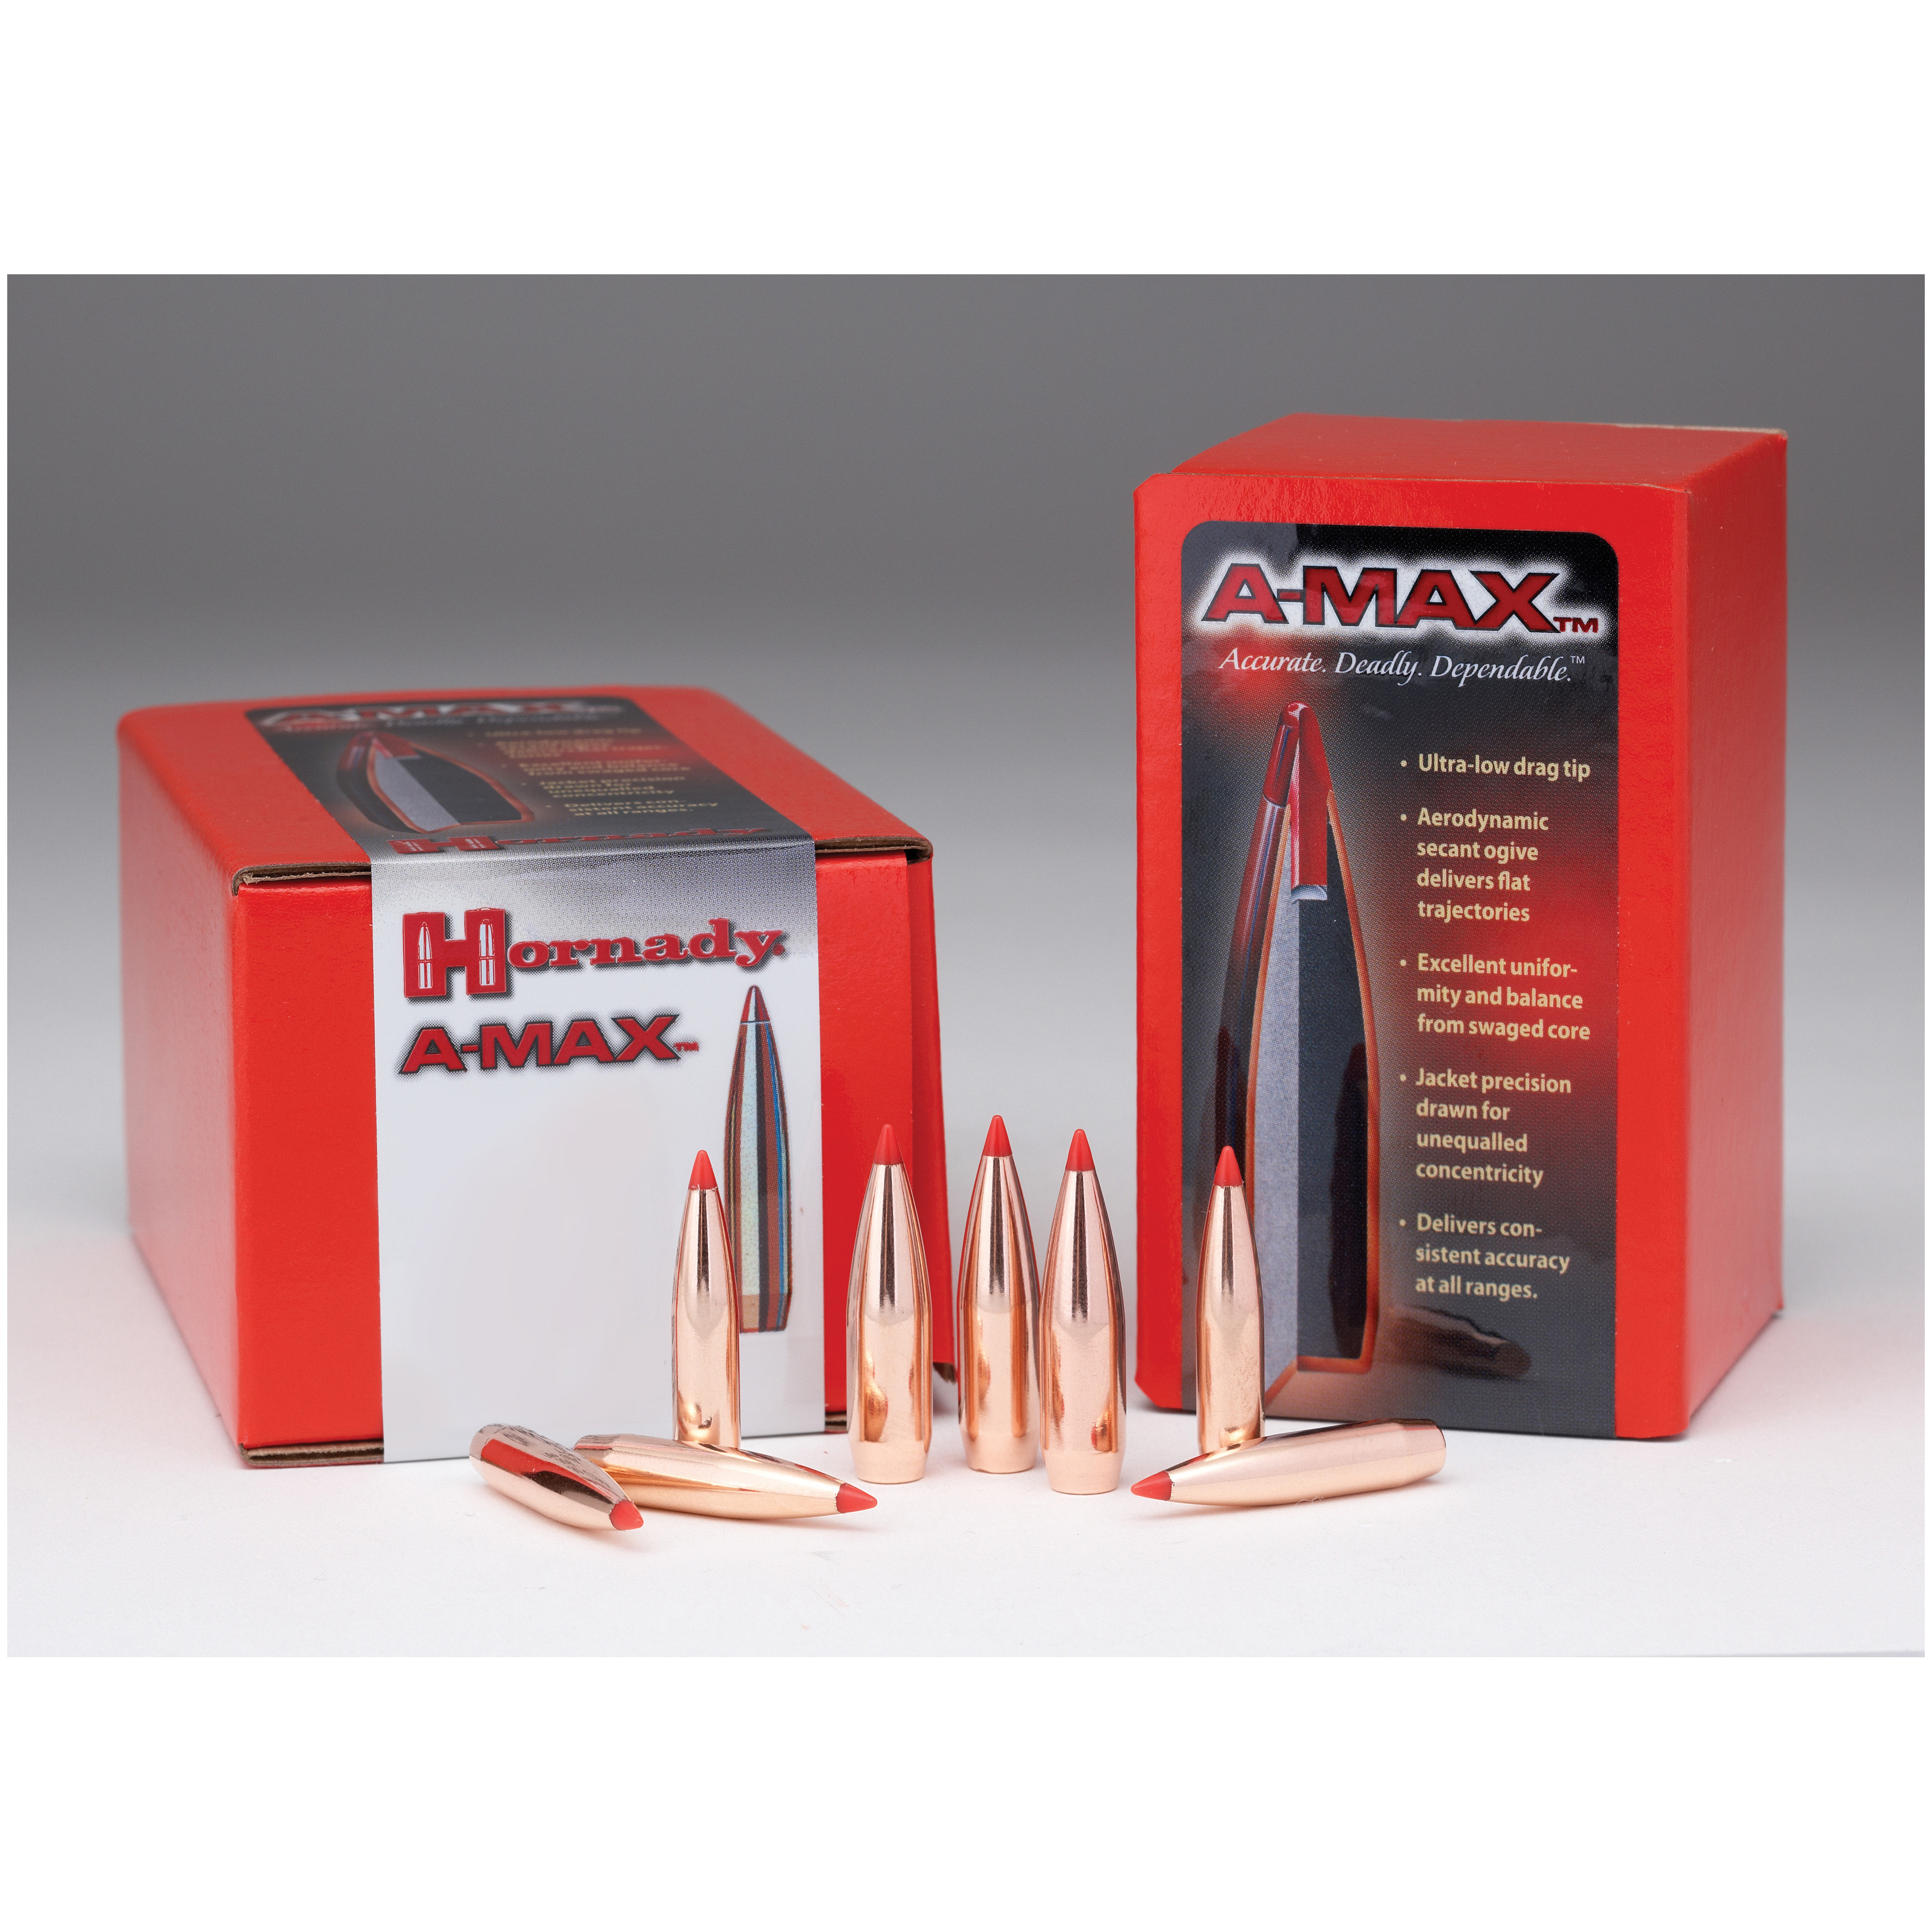 100-Pk. of Hornady .22 Caliber 72 Grain A-MAX Bullets provide consistent, tight groups every time! Low drag and flatter trajectories. Designed for match shooters, these Hornady .22 Caliber 72-grain A-MAX Bullets provide consistent, tight groups every time. The aerodynamic secant ogive profile, sharp pointed tip and unequaled concentricity of the A-MAX design give 'em an extremely high ballistic coefficient for near in-flight perfection.Features:Rapid, explosive expansion with limited penetration Incredibly accurate Flat trajectory 72 Grain weight 100 bullets per box. - $24.99